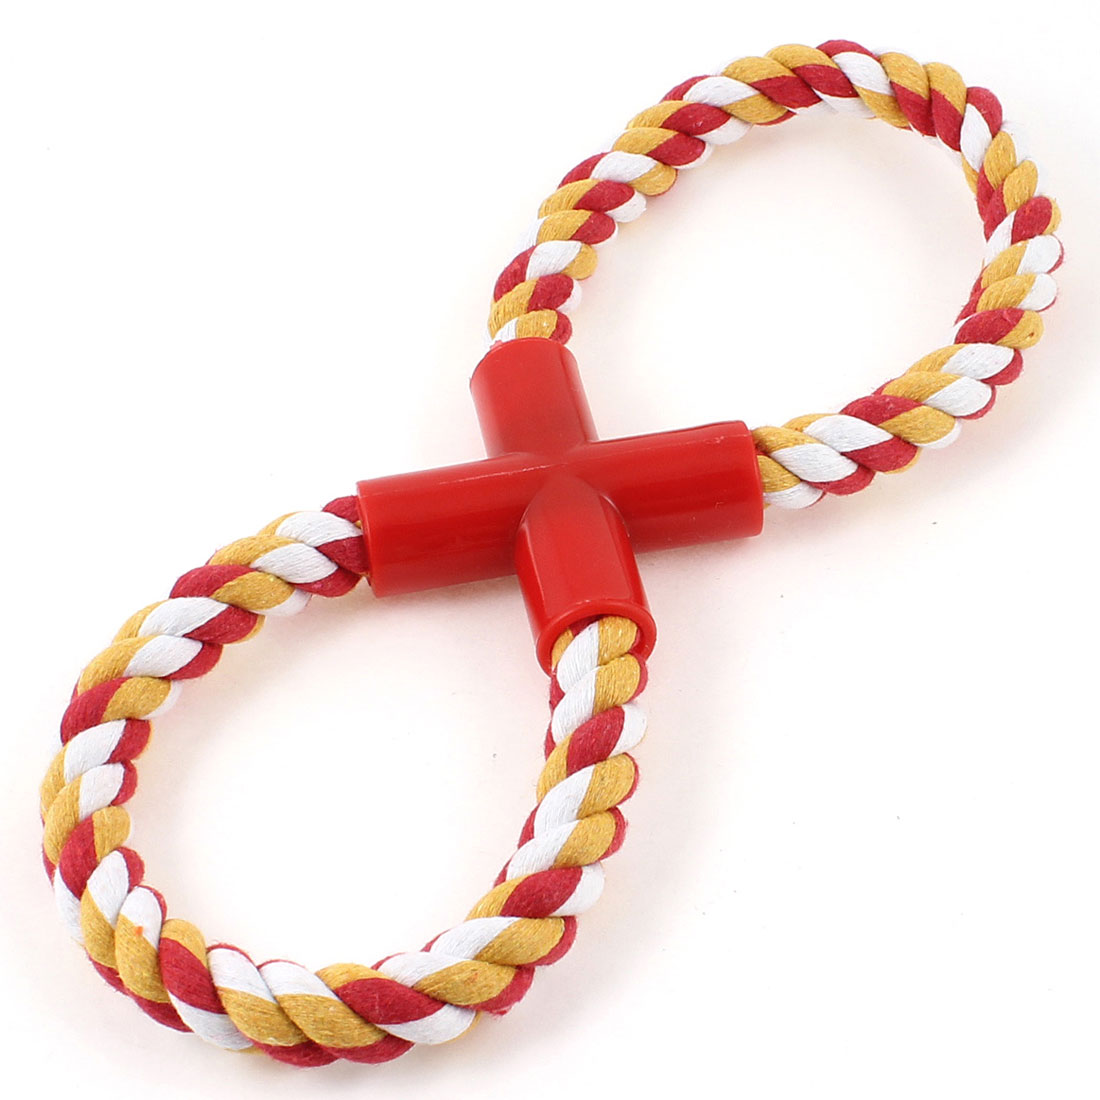 Red White Yellow Knotting Rope Figure 8-Shaped Chew Tug Toy for Pet Dog